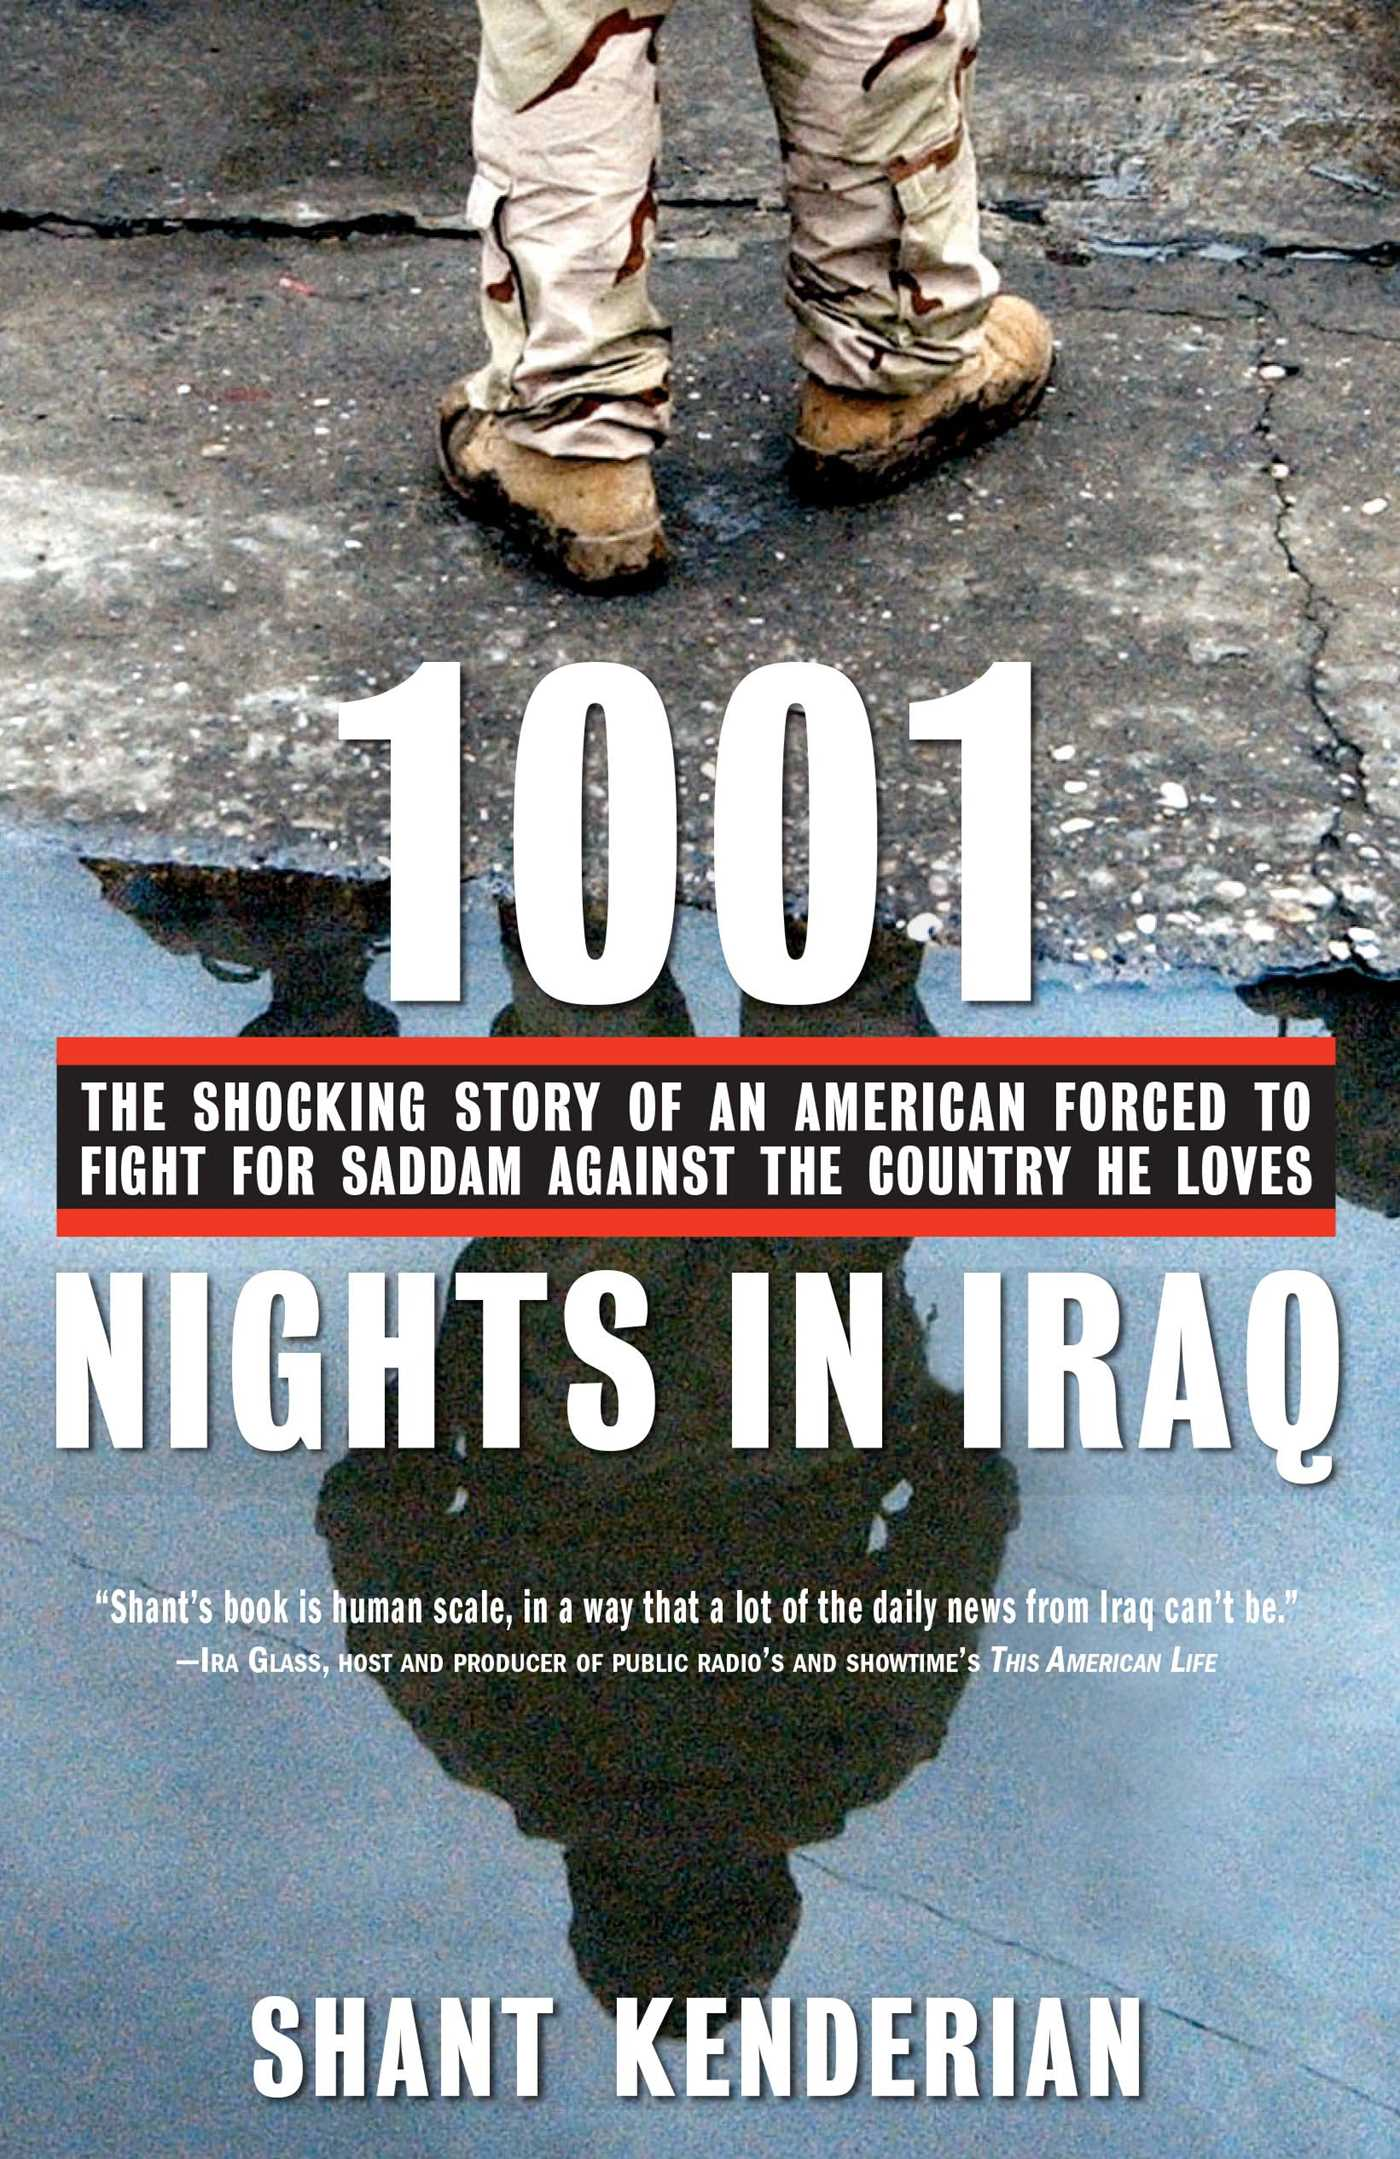 1001-nights-in-iraq-9781416540199_hr